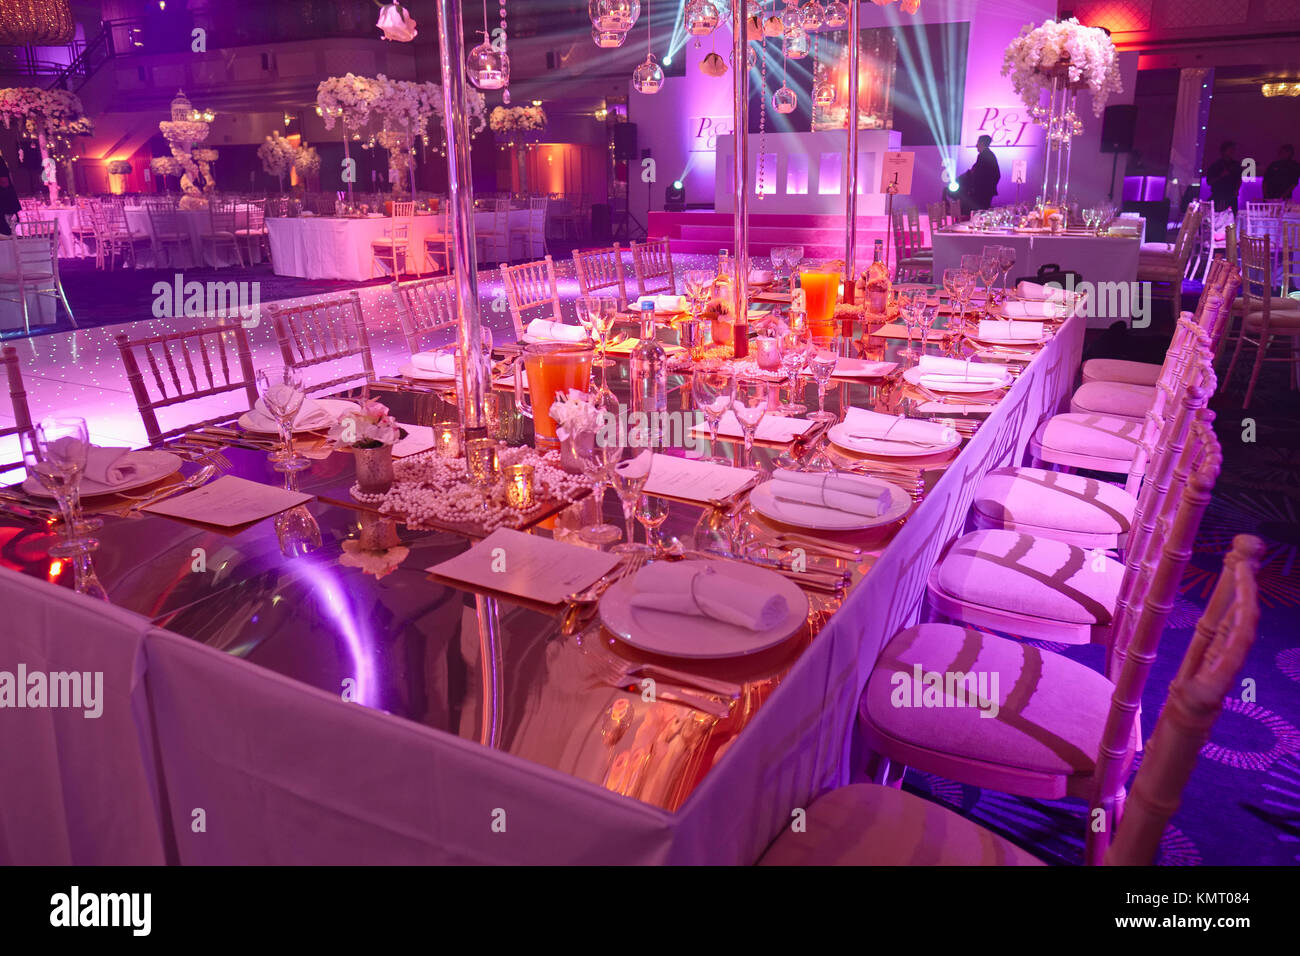 Hotel Decorations Stock Photos & Hotel Decorations Stock Images - Alamy